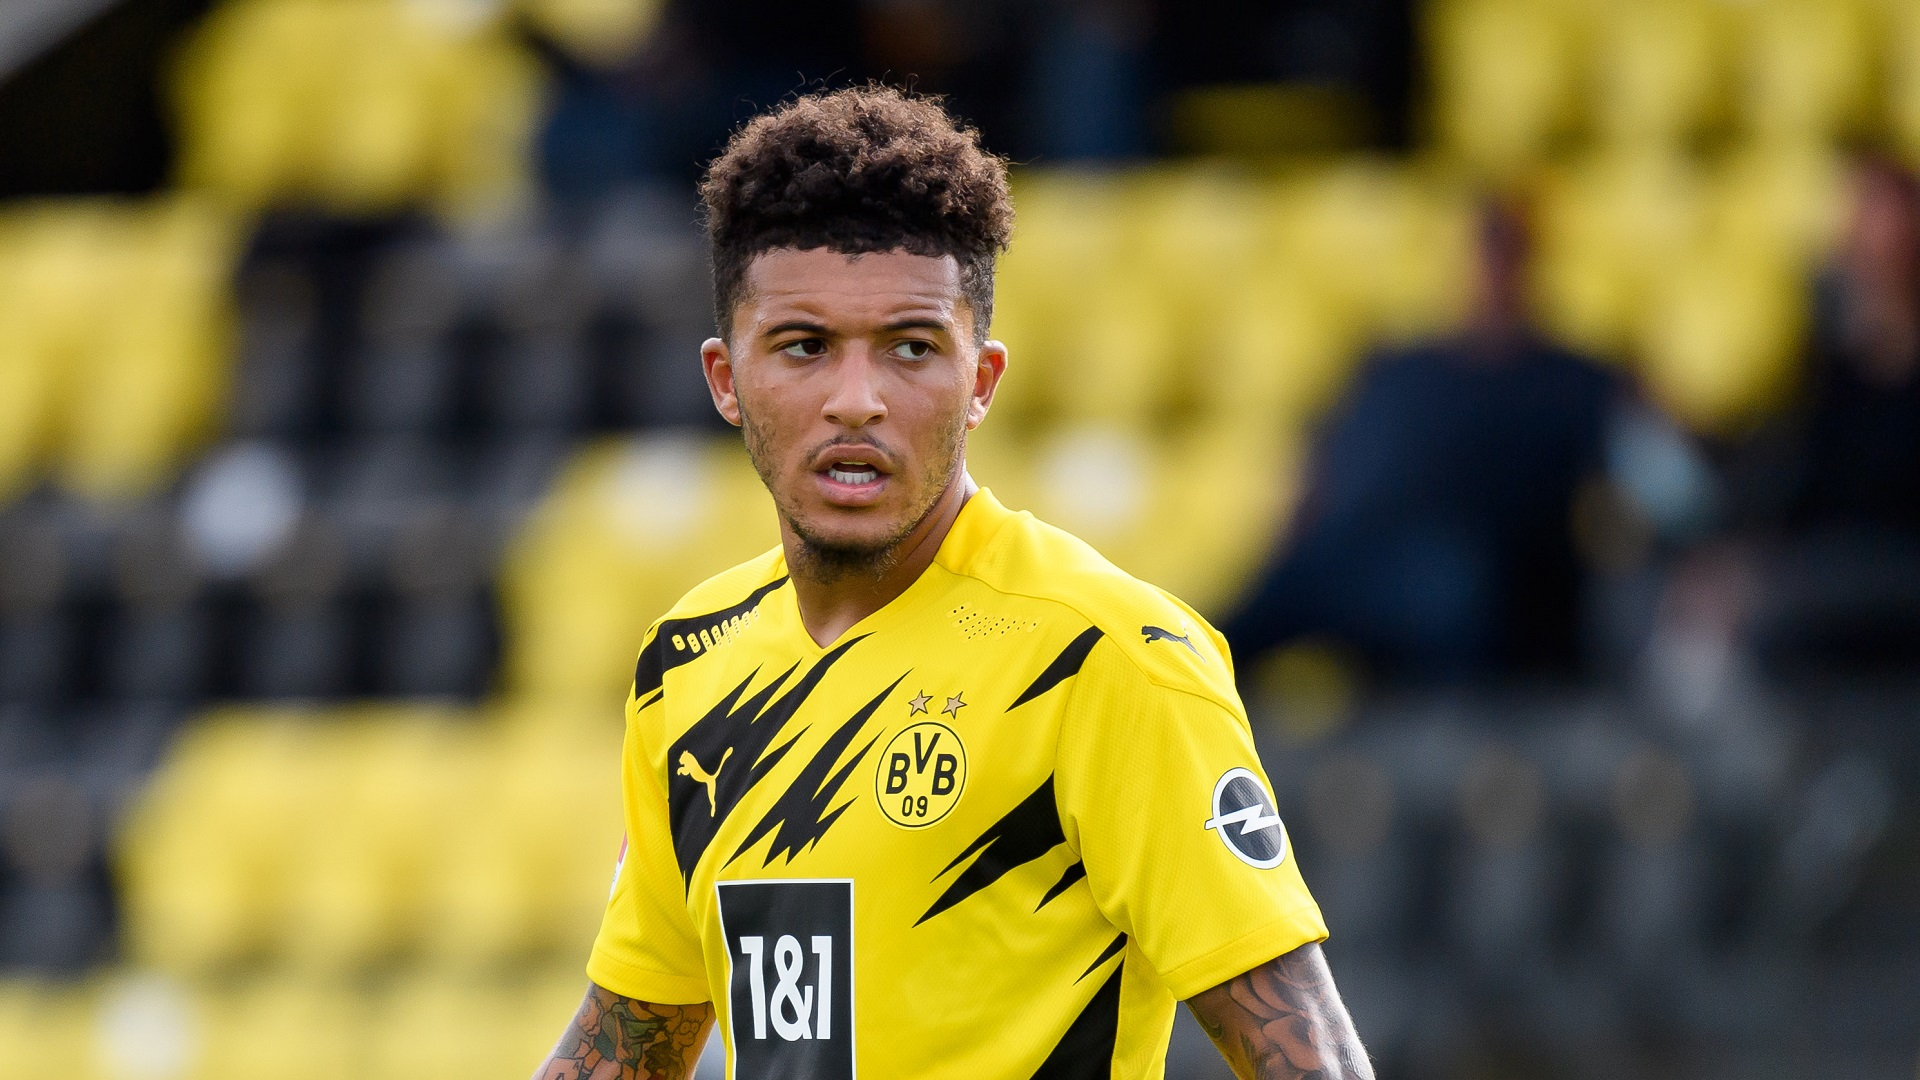 Man Utd make progress on Sancho deal as negotiations continue over a move for England star